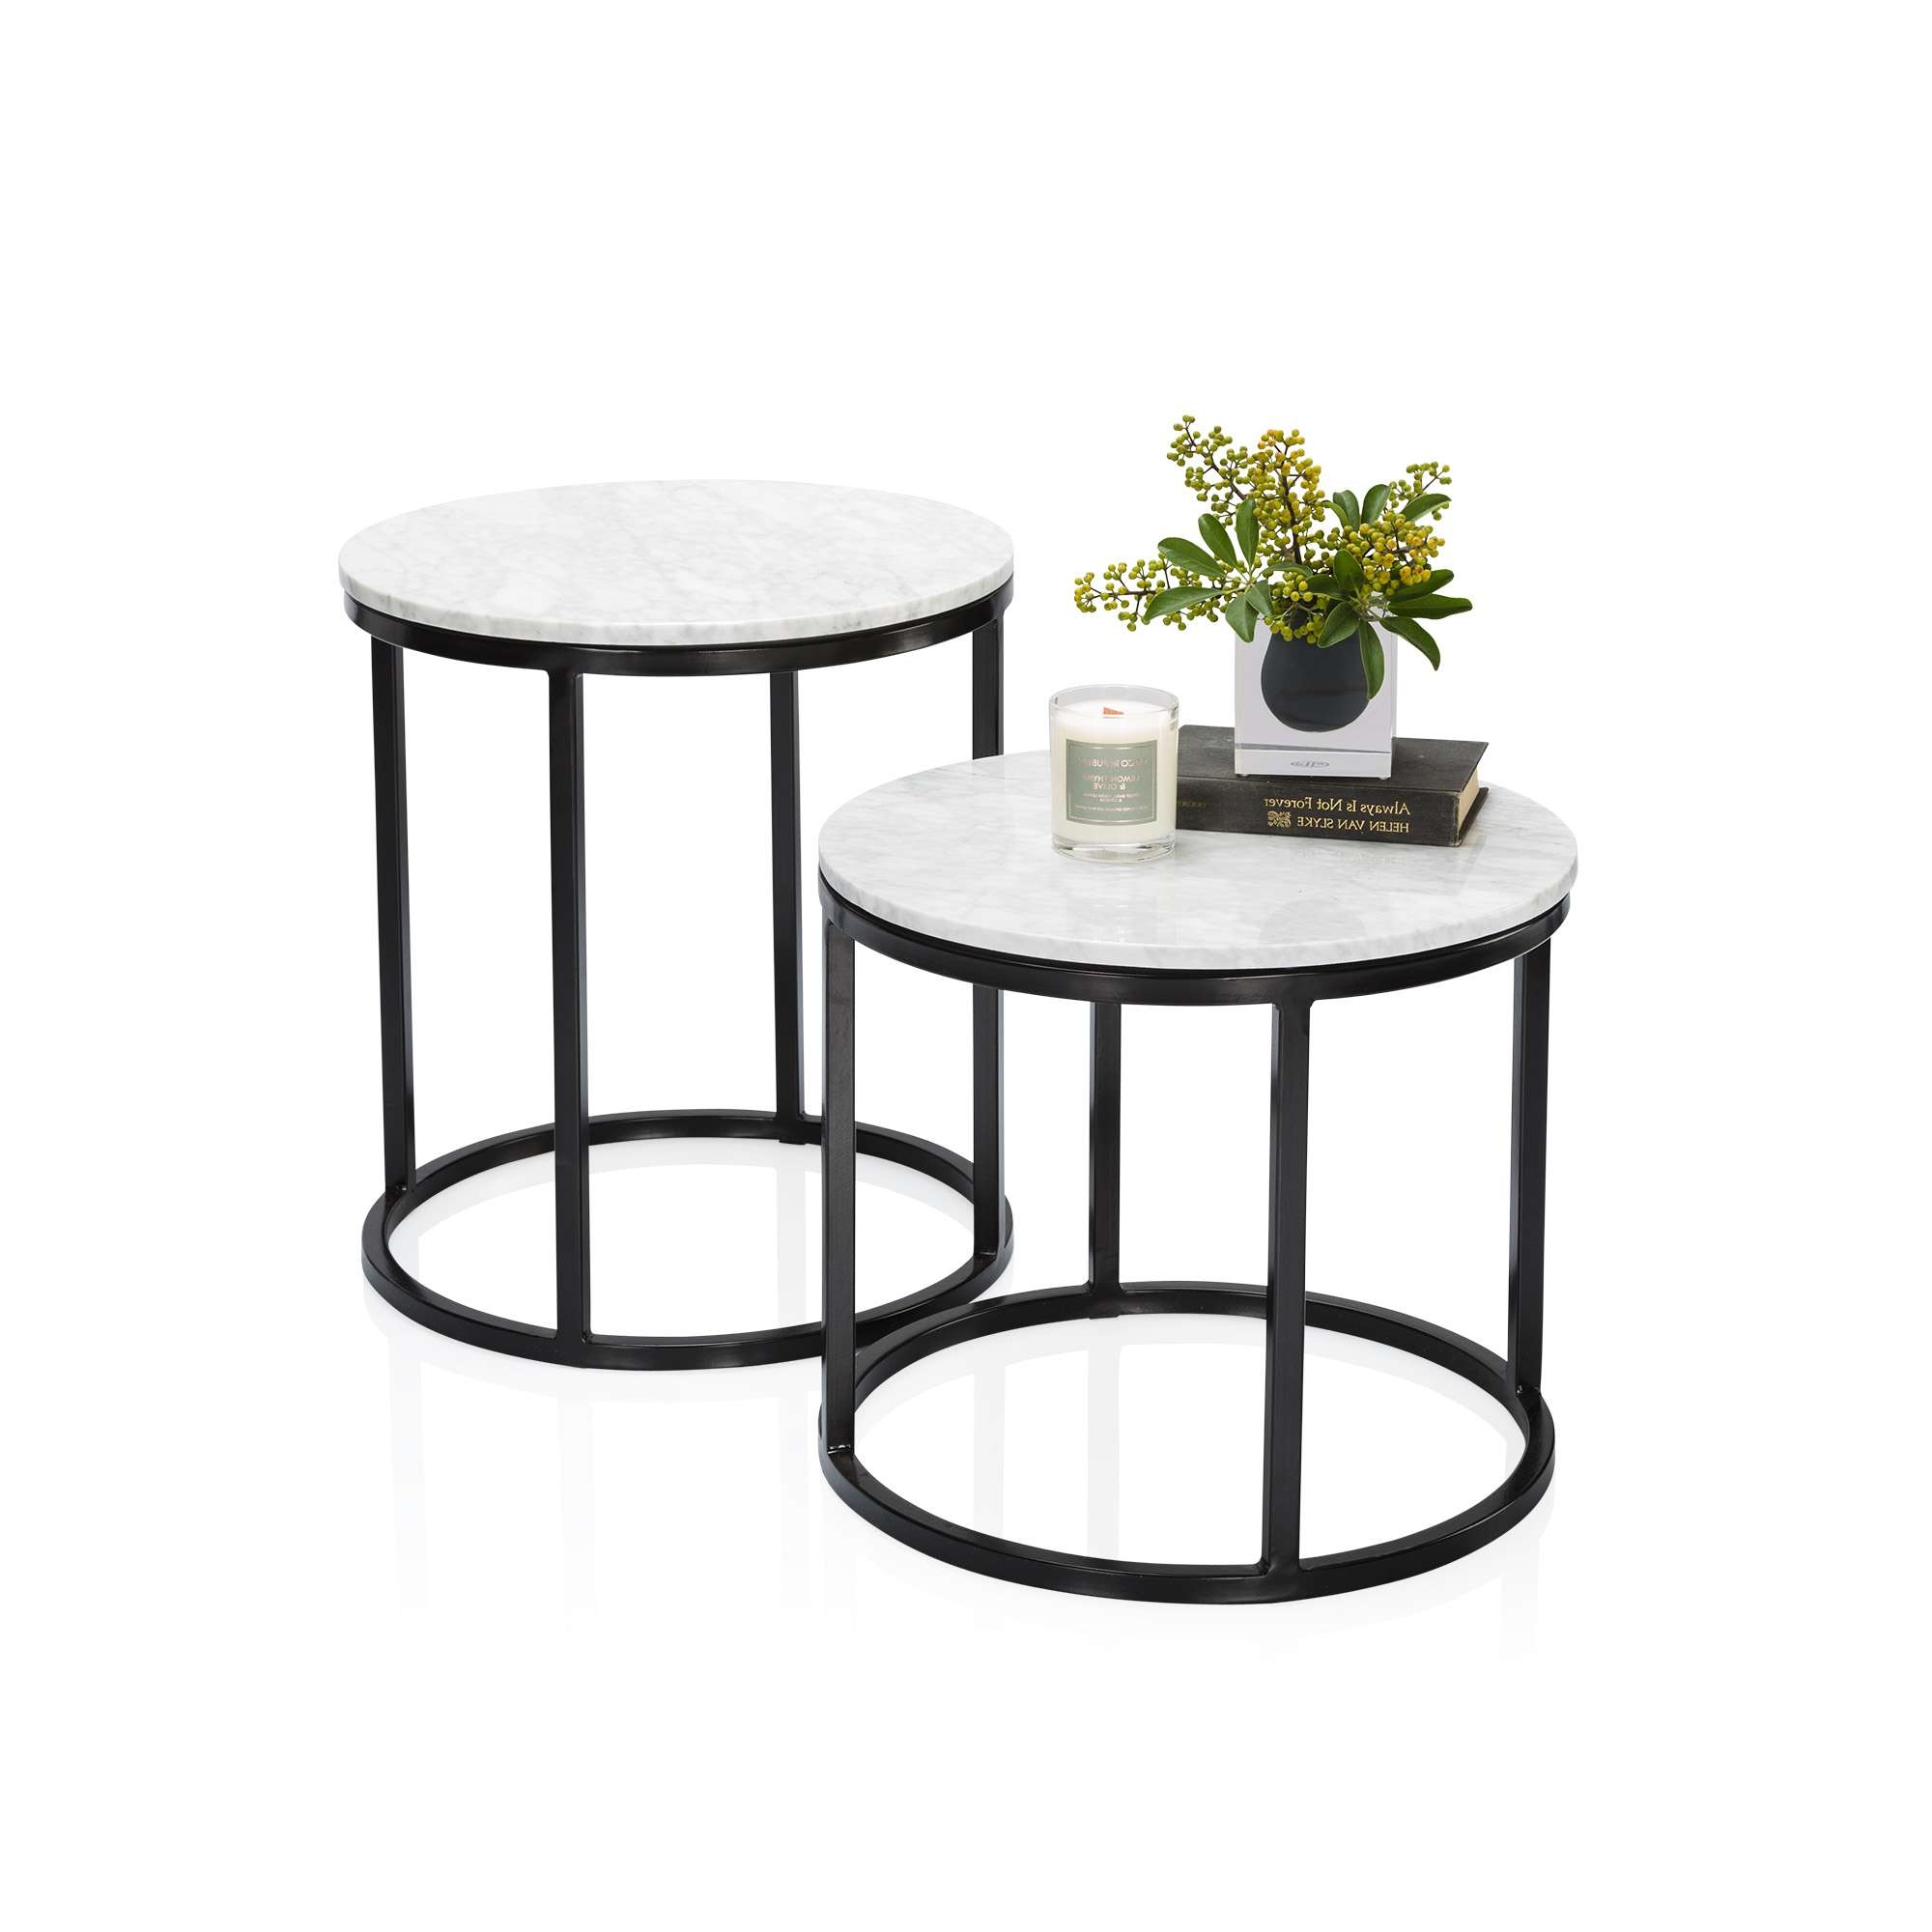 Fashionable Marble Round Coffee Tables Throughout Noho Marble Side Table (View 11 of 20)